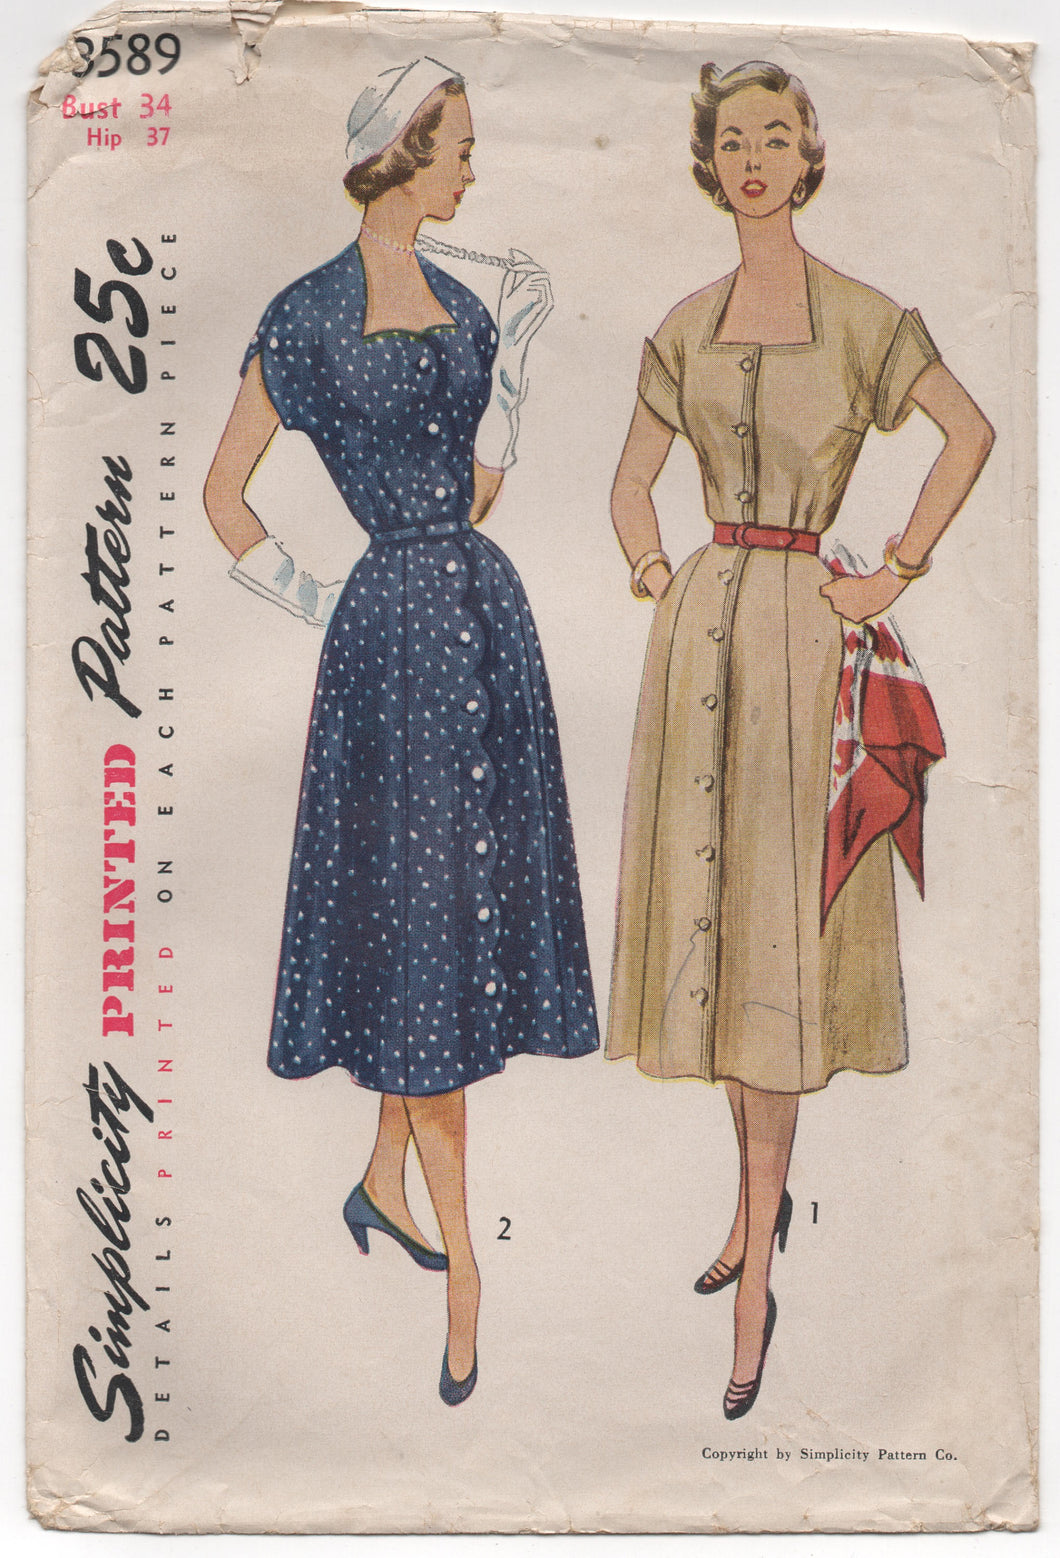 1950's Simplicity Shirtwaist Dress with Sweetheart and Scallops - Bust 34